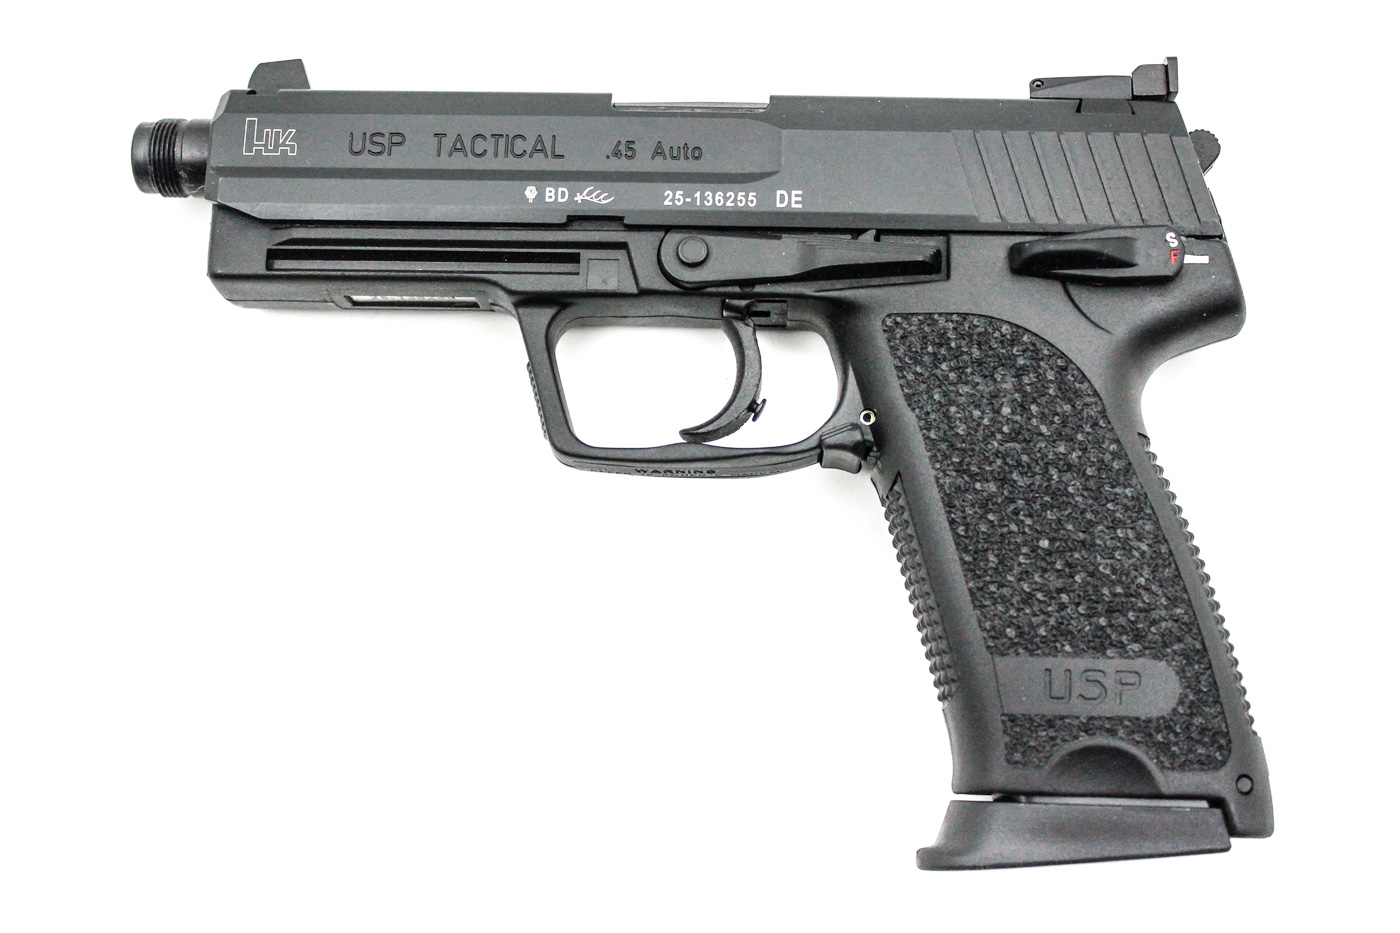 Heckler & Koch USP Tactical - Image 1